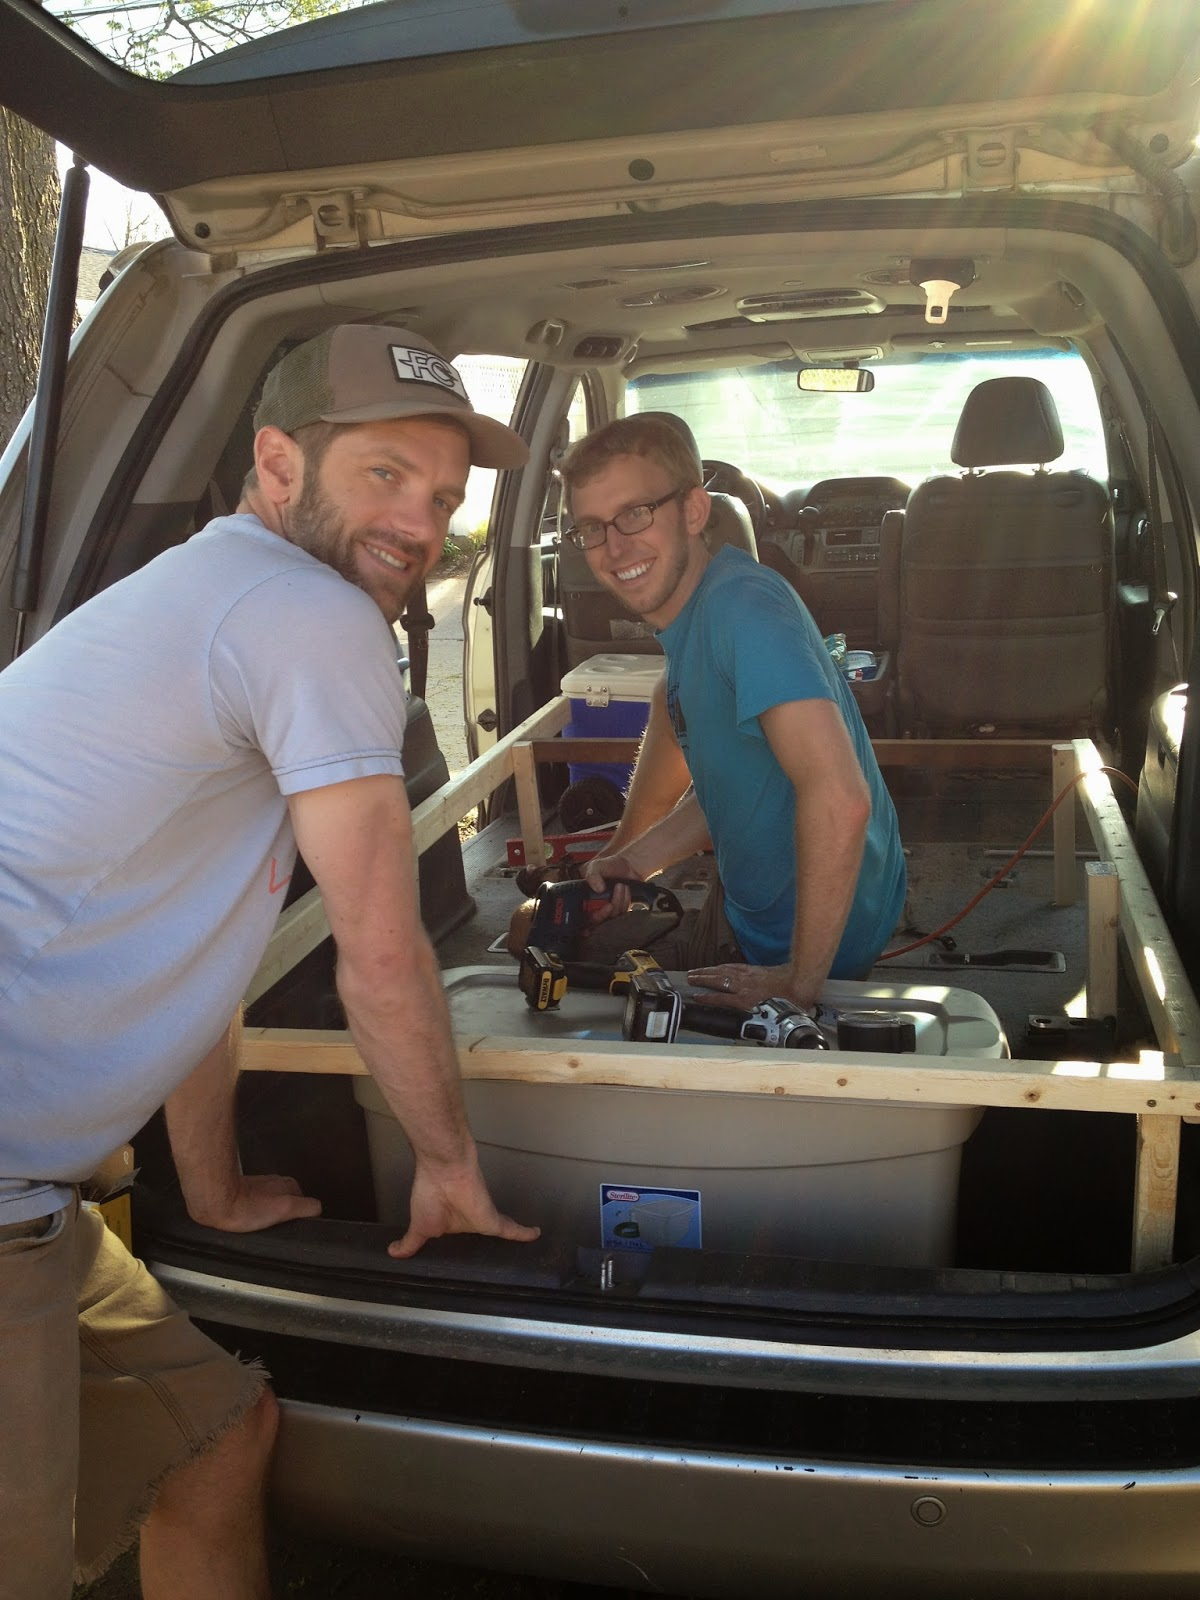 Honda Odyssey Camper >> The odyssey in the Odyssey: The makings of a camper van